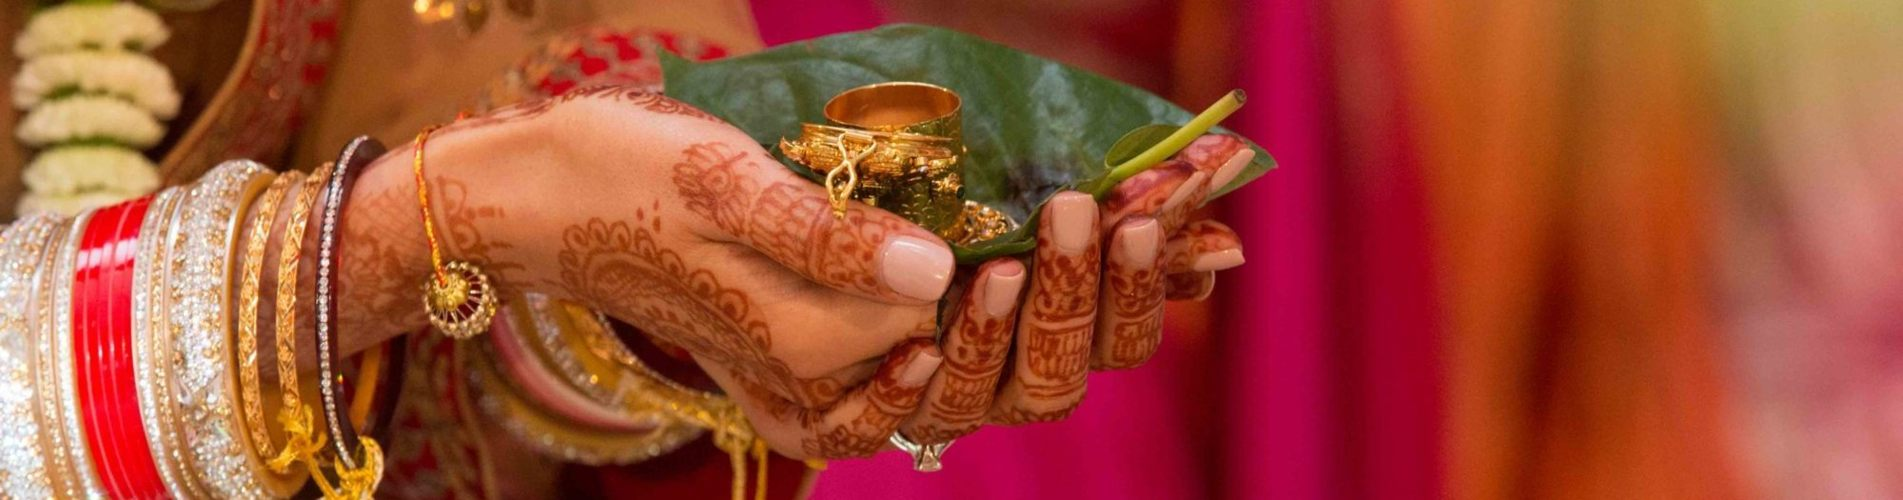 Hindhu Priest for Wedding Ceremony, Hindhu Priest UK, Hindu Priest London